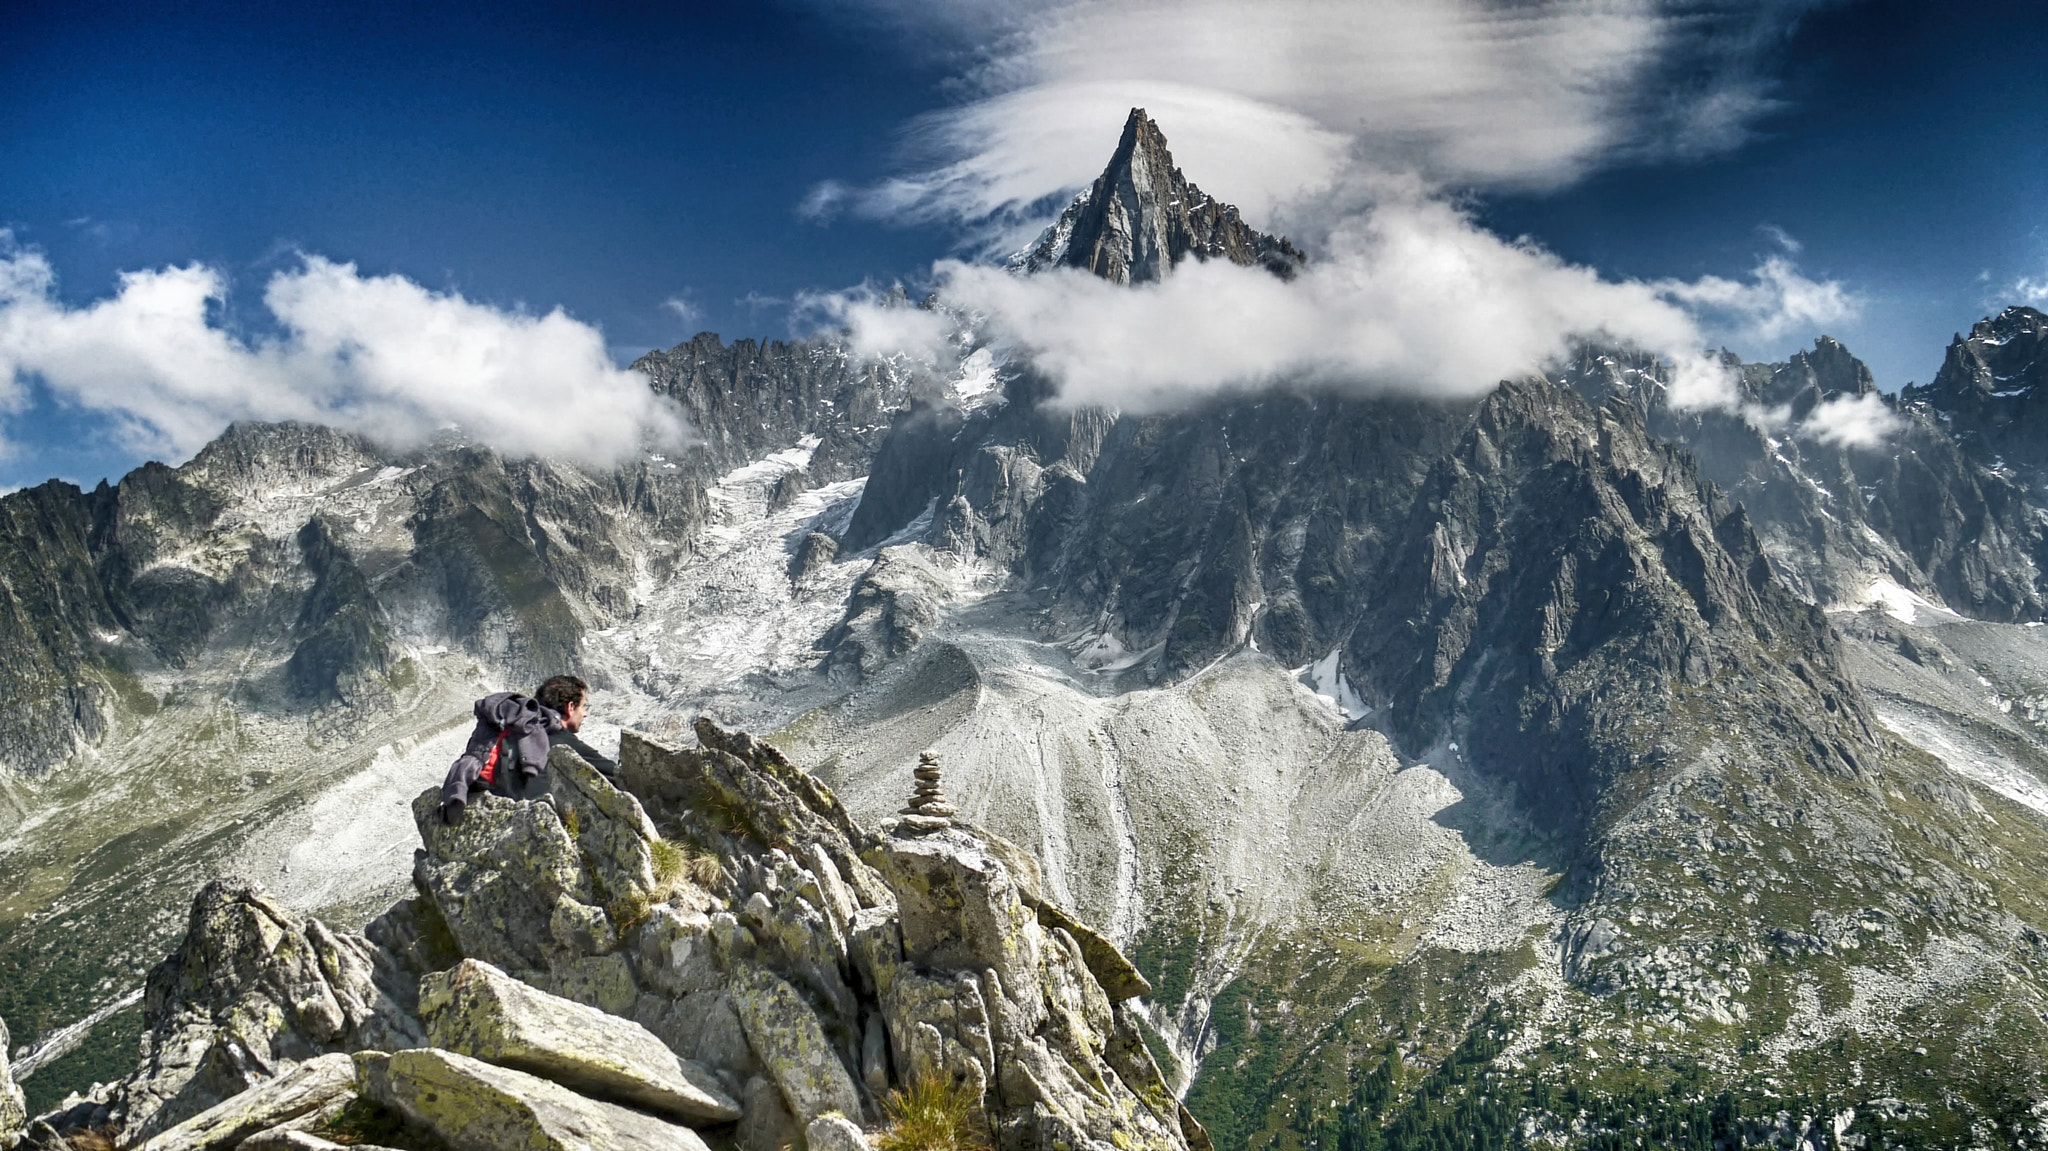 Photograph Le Dru by Tom Phillips on 500px